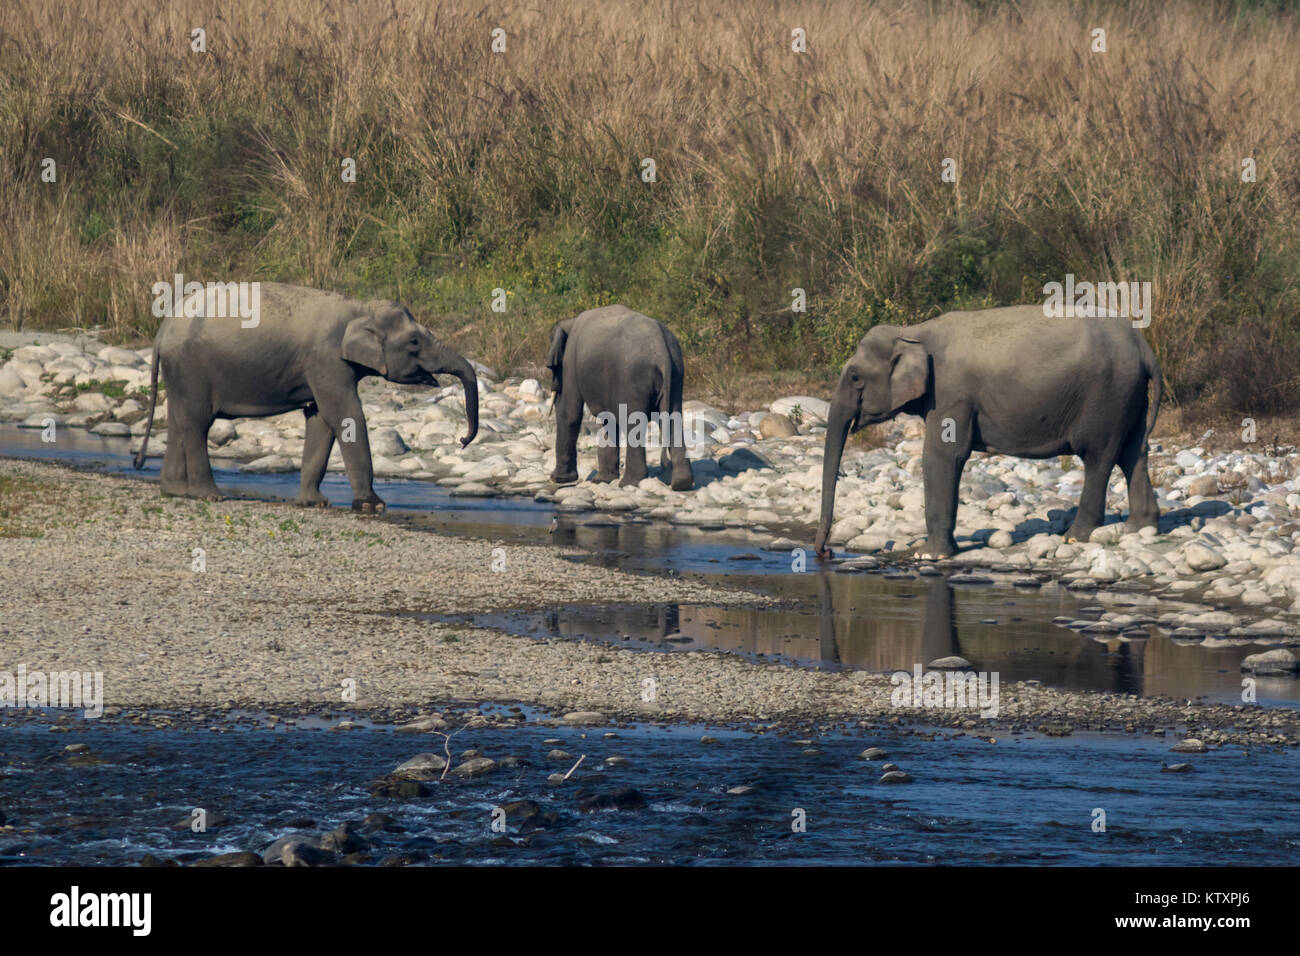 The Indian elephant (Elephas maximus indicus) drinking water in the Ramganga river in Corbett Tiger Reserve in Uttarakhand, - Stock Image